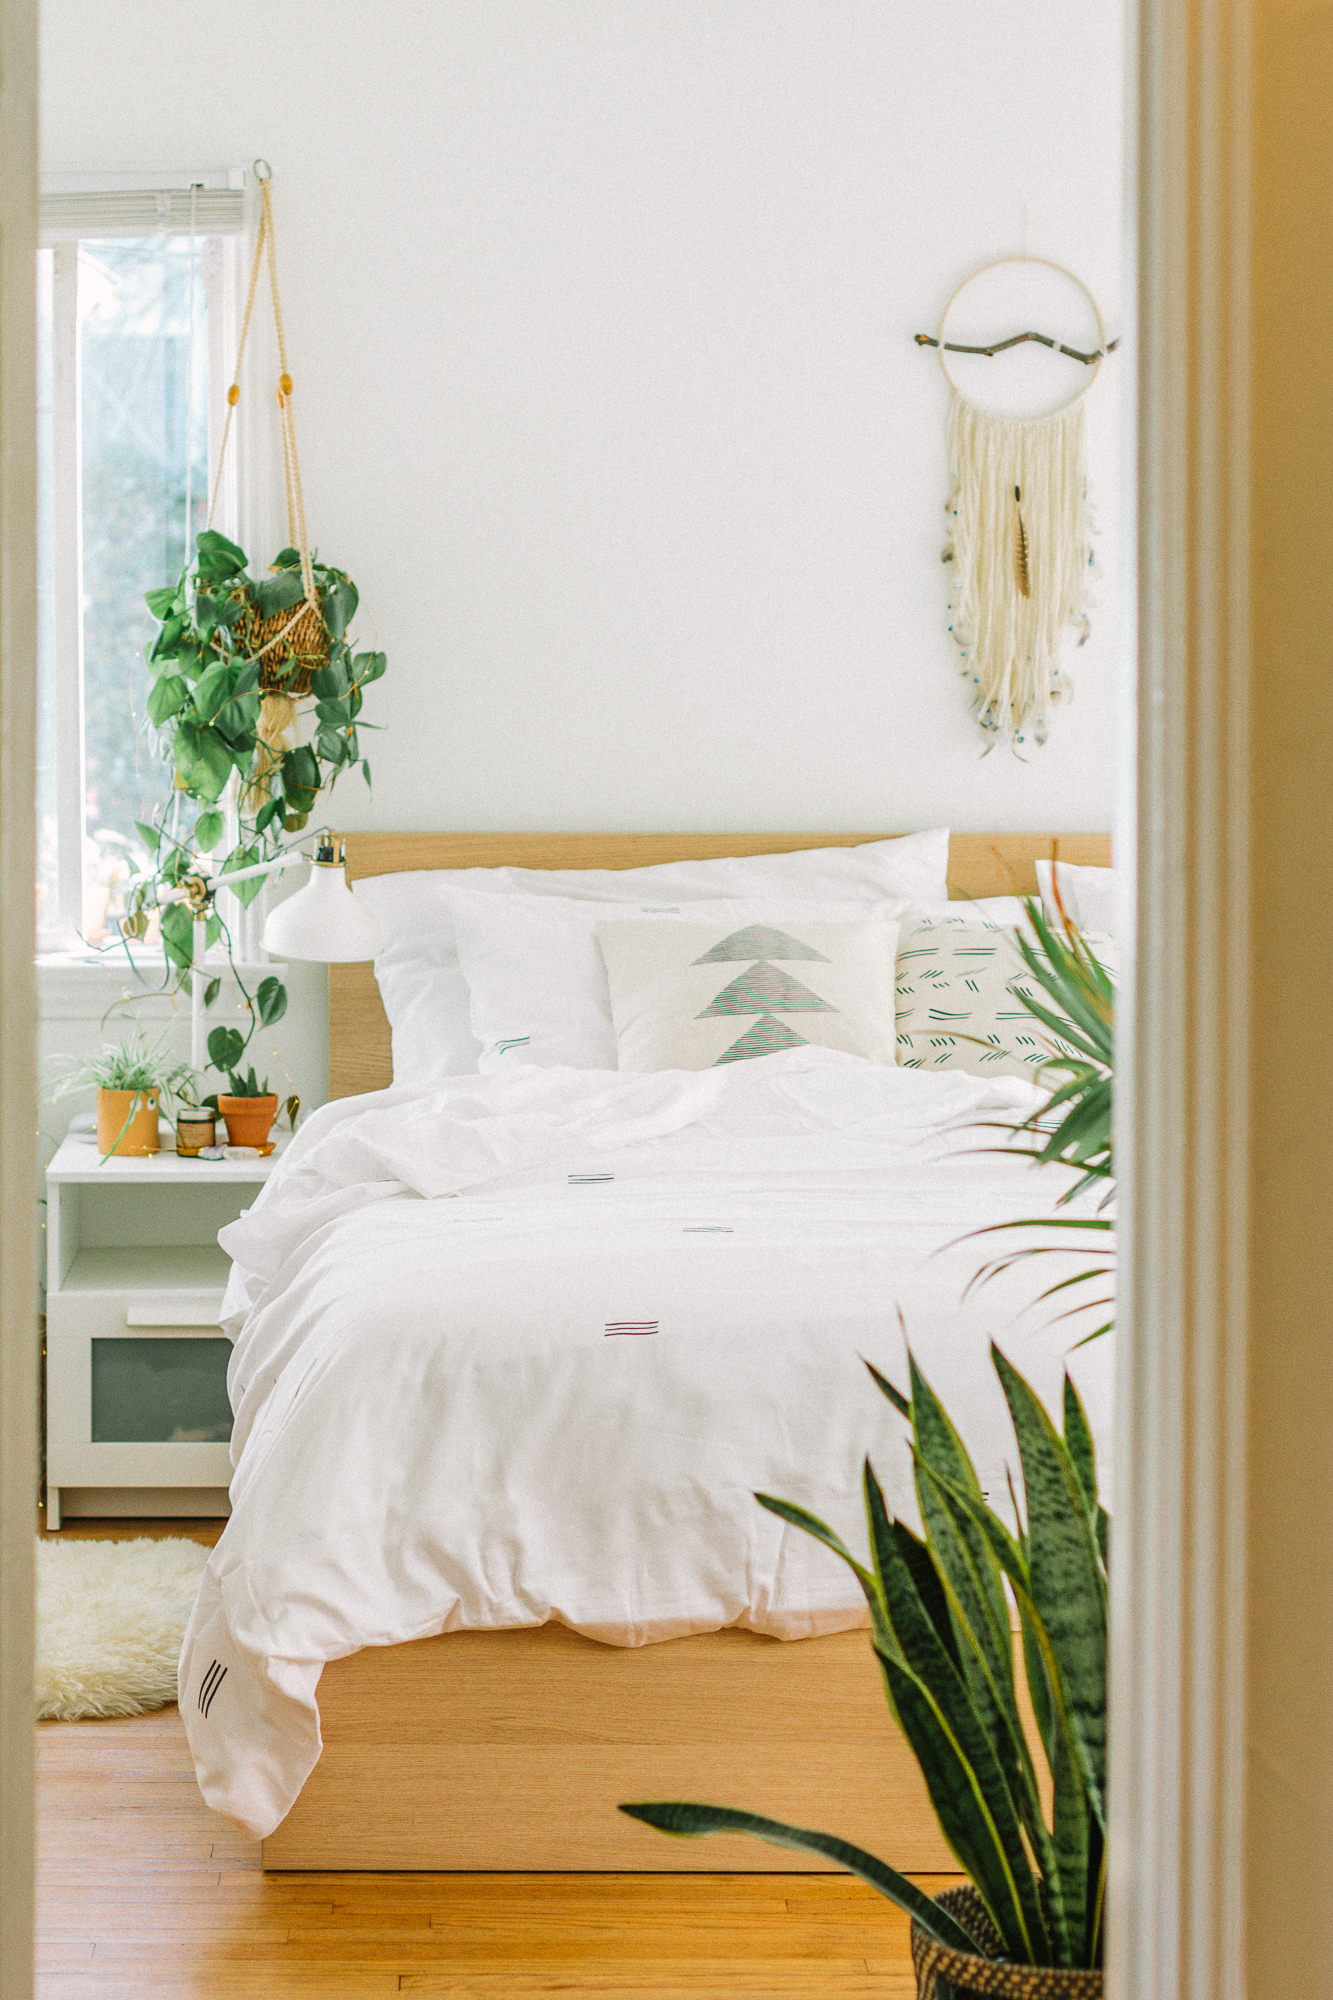 Boho Bedroom My Boho Bedroom Inspo Black Blooms